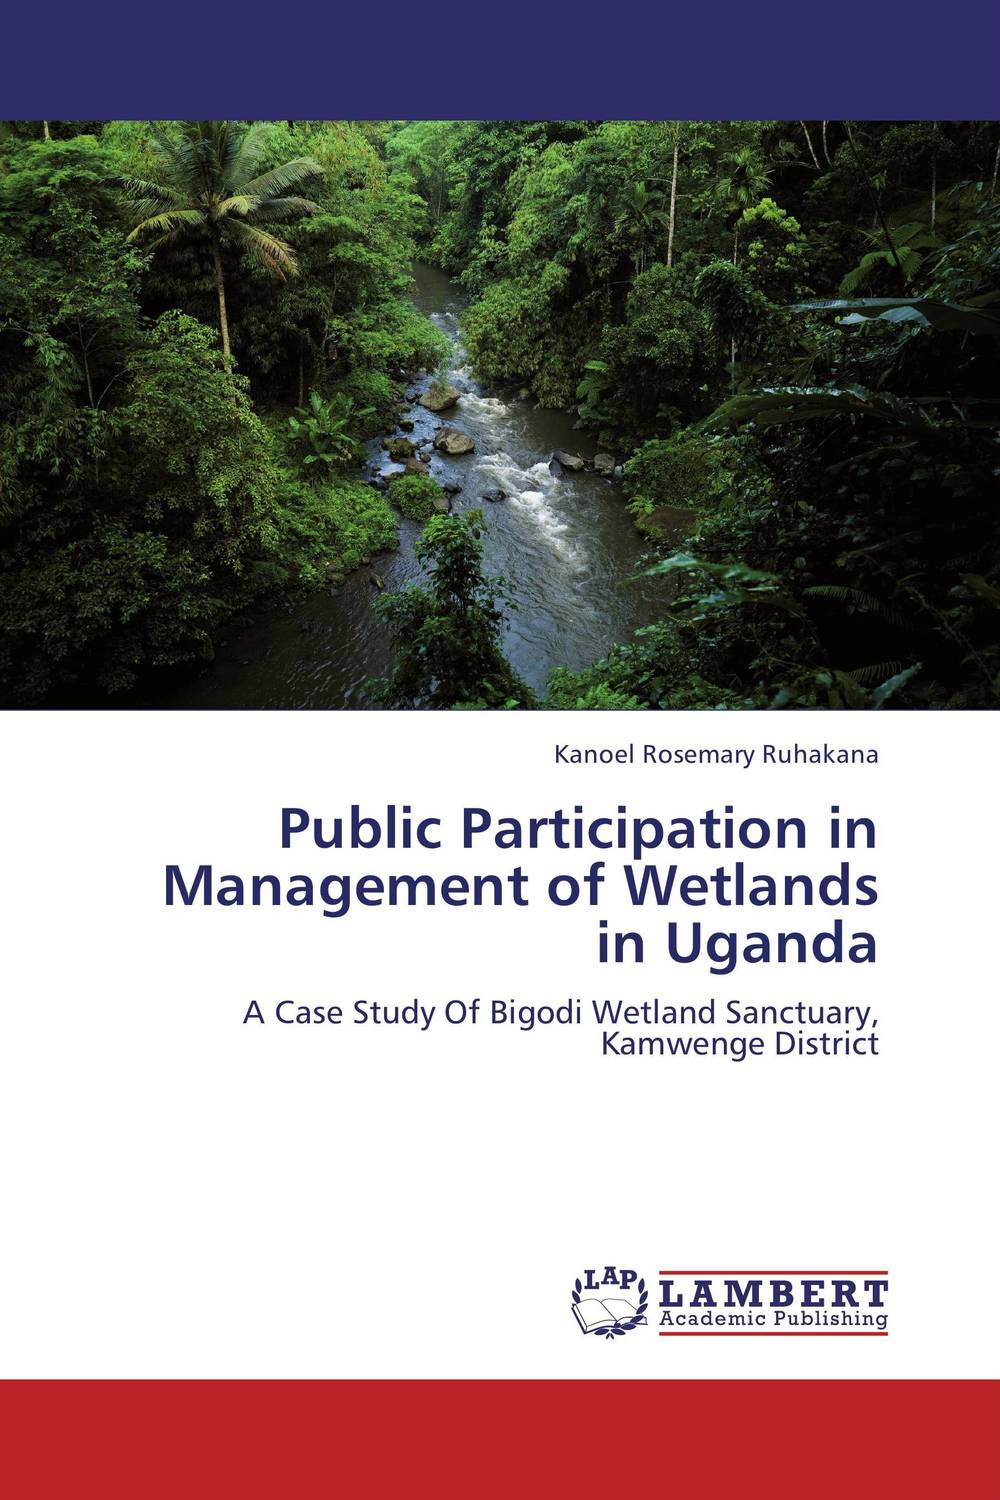 Public Participation in Management of Wetlands in Uganda asep rahmat fajar the public participation in the selection of justice in indonesia